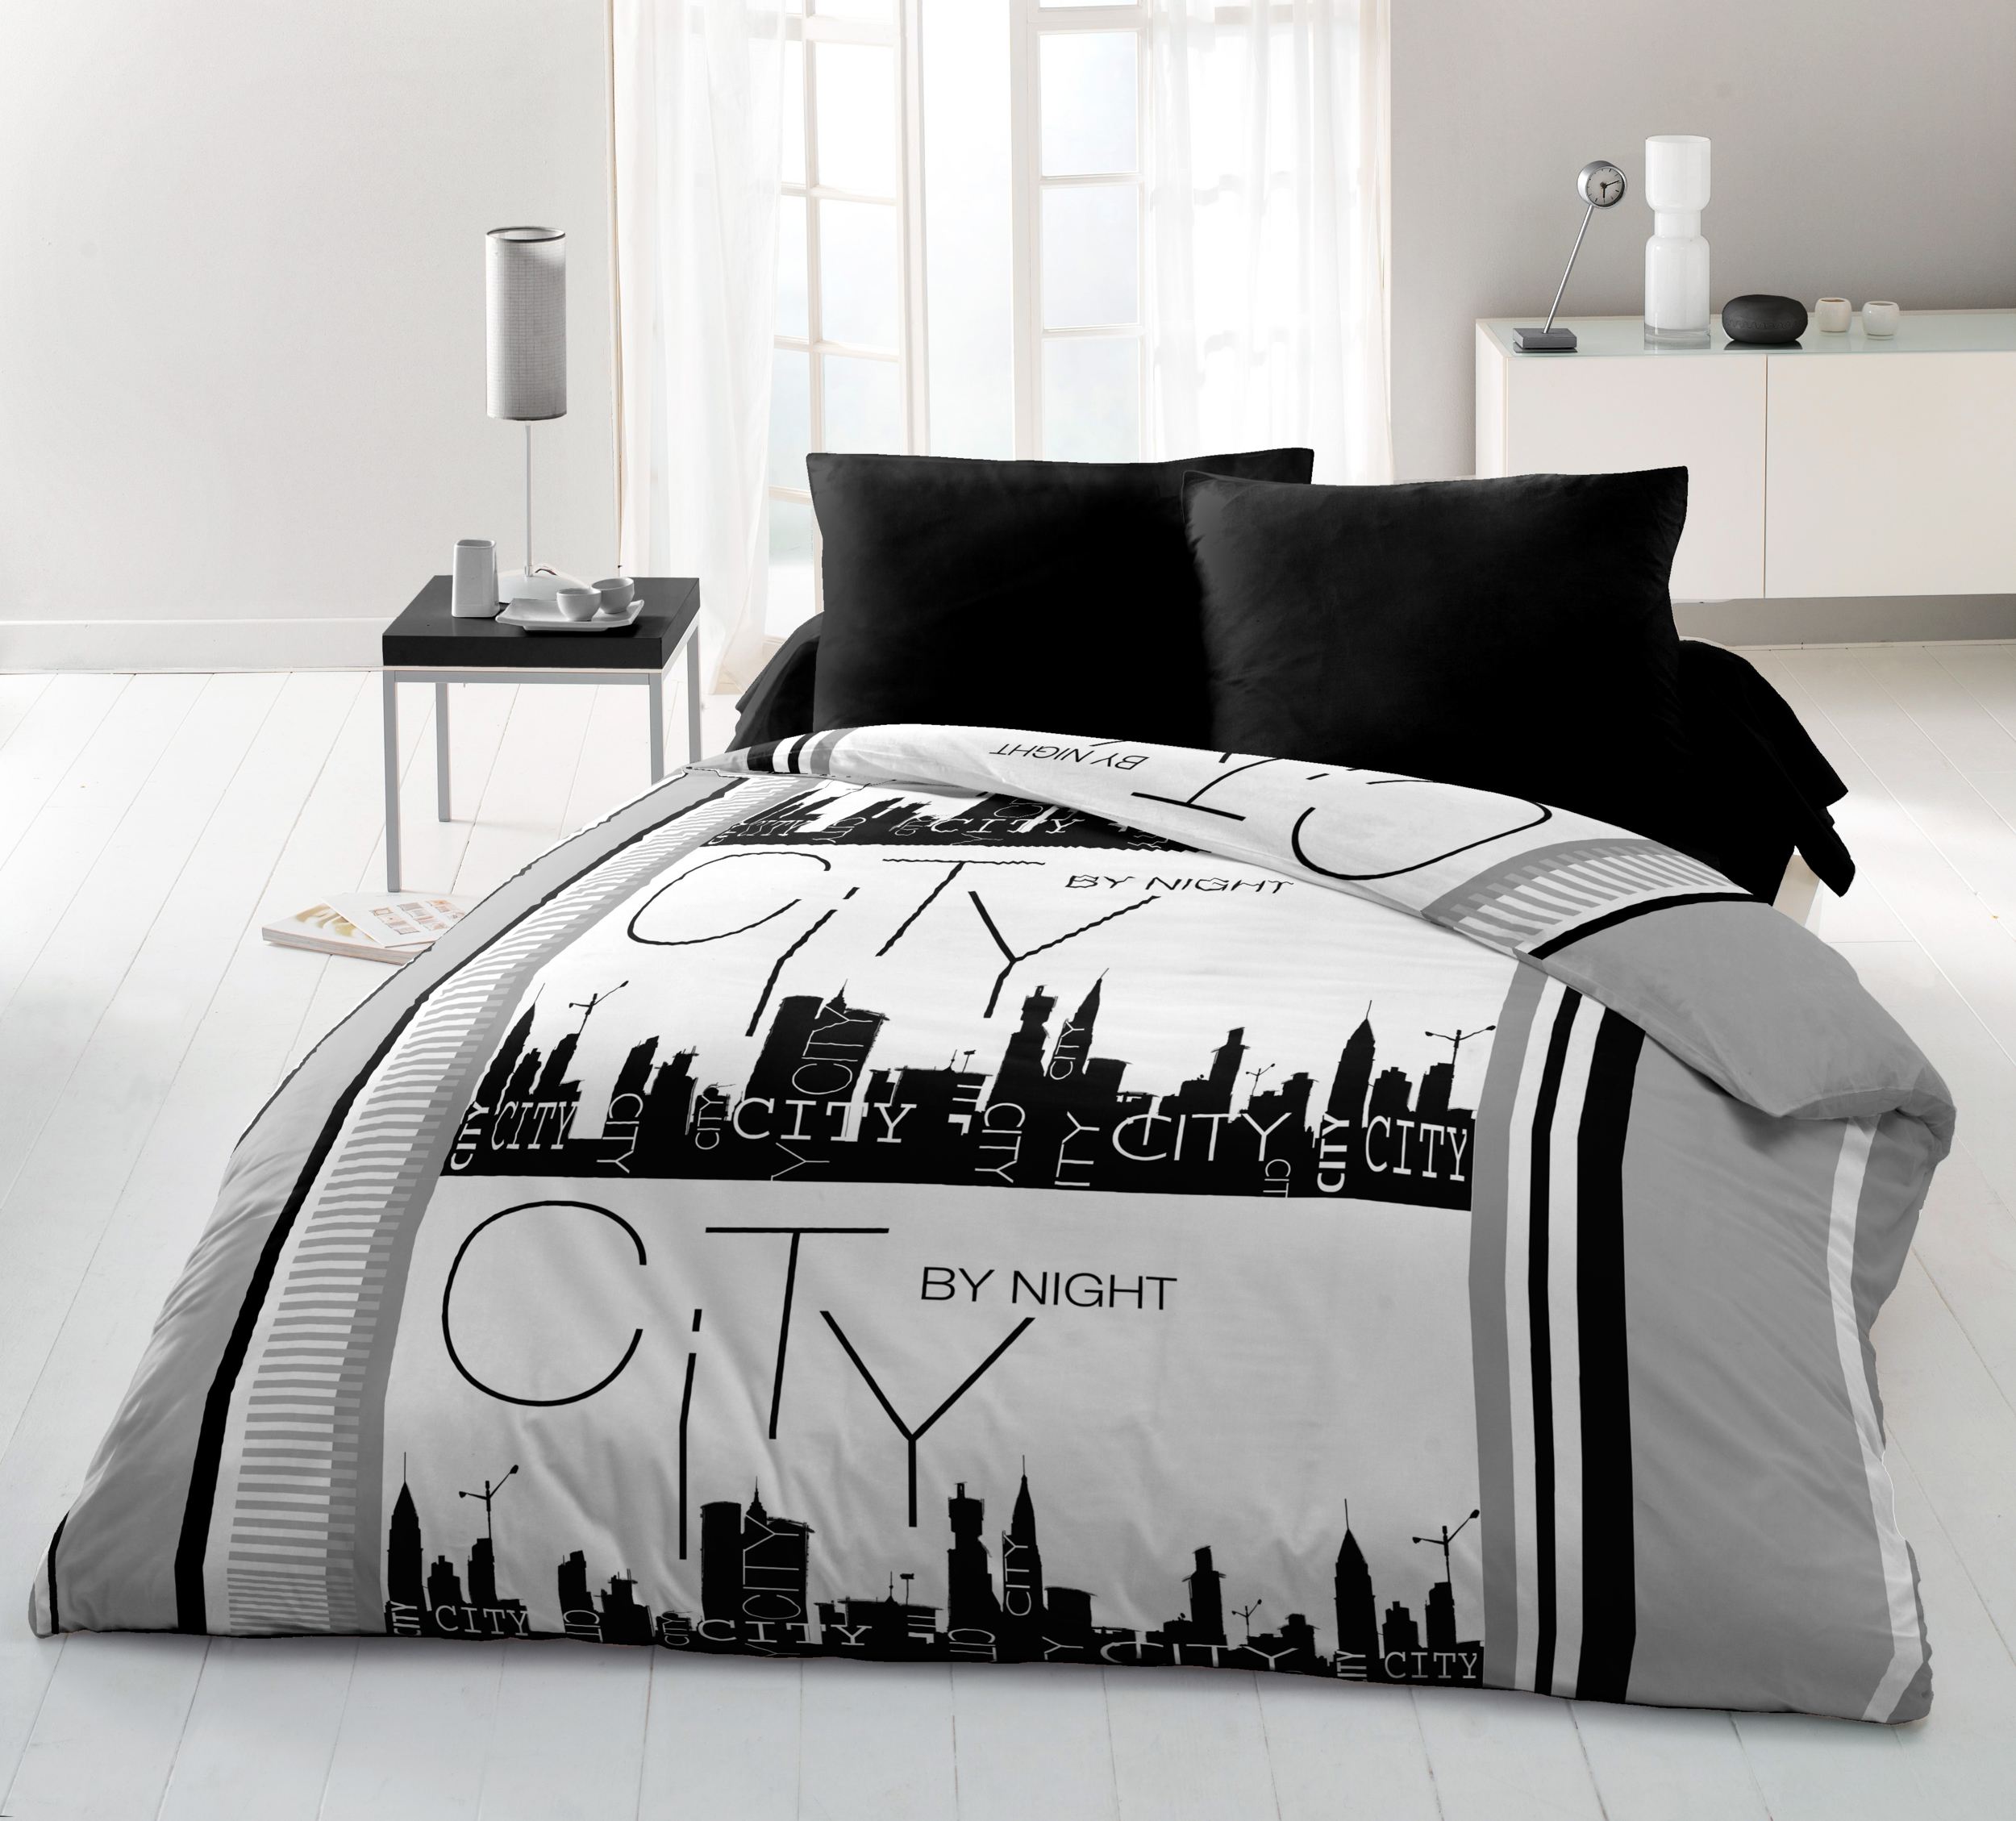 Parure de couette microfibre 3pcs 240x220 city by night